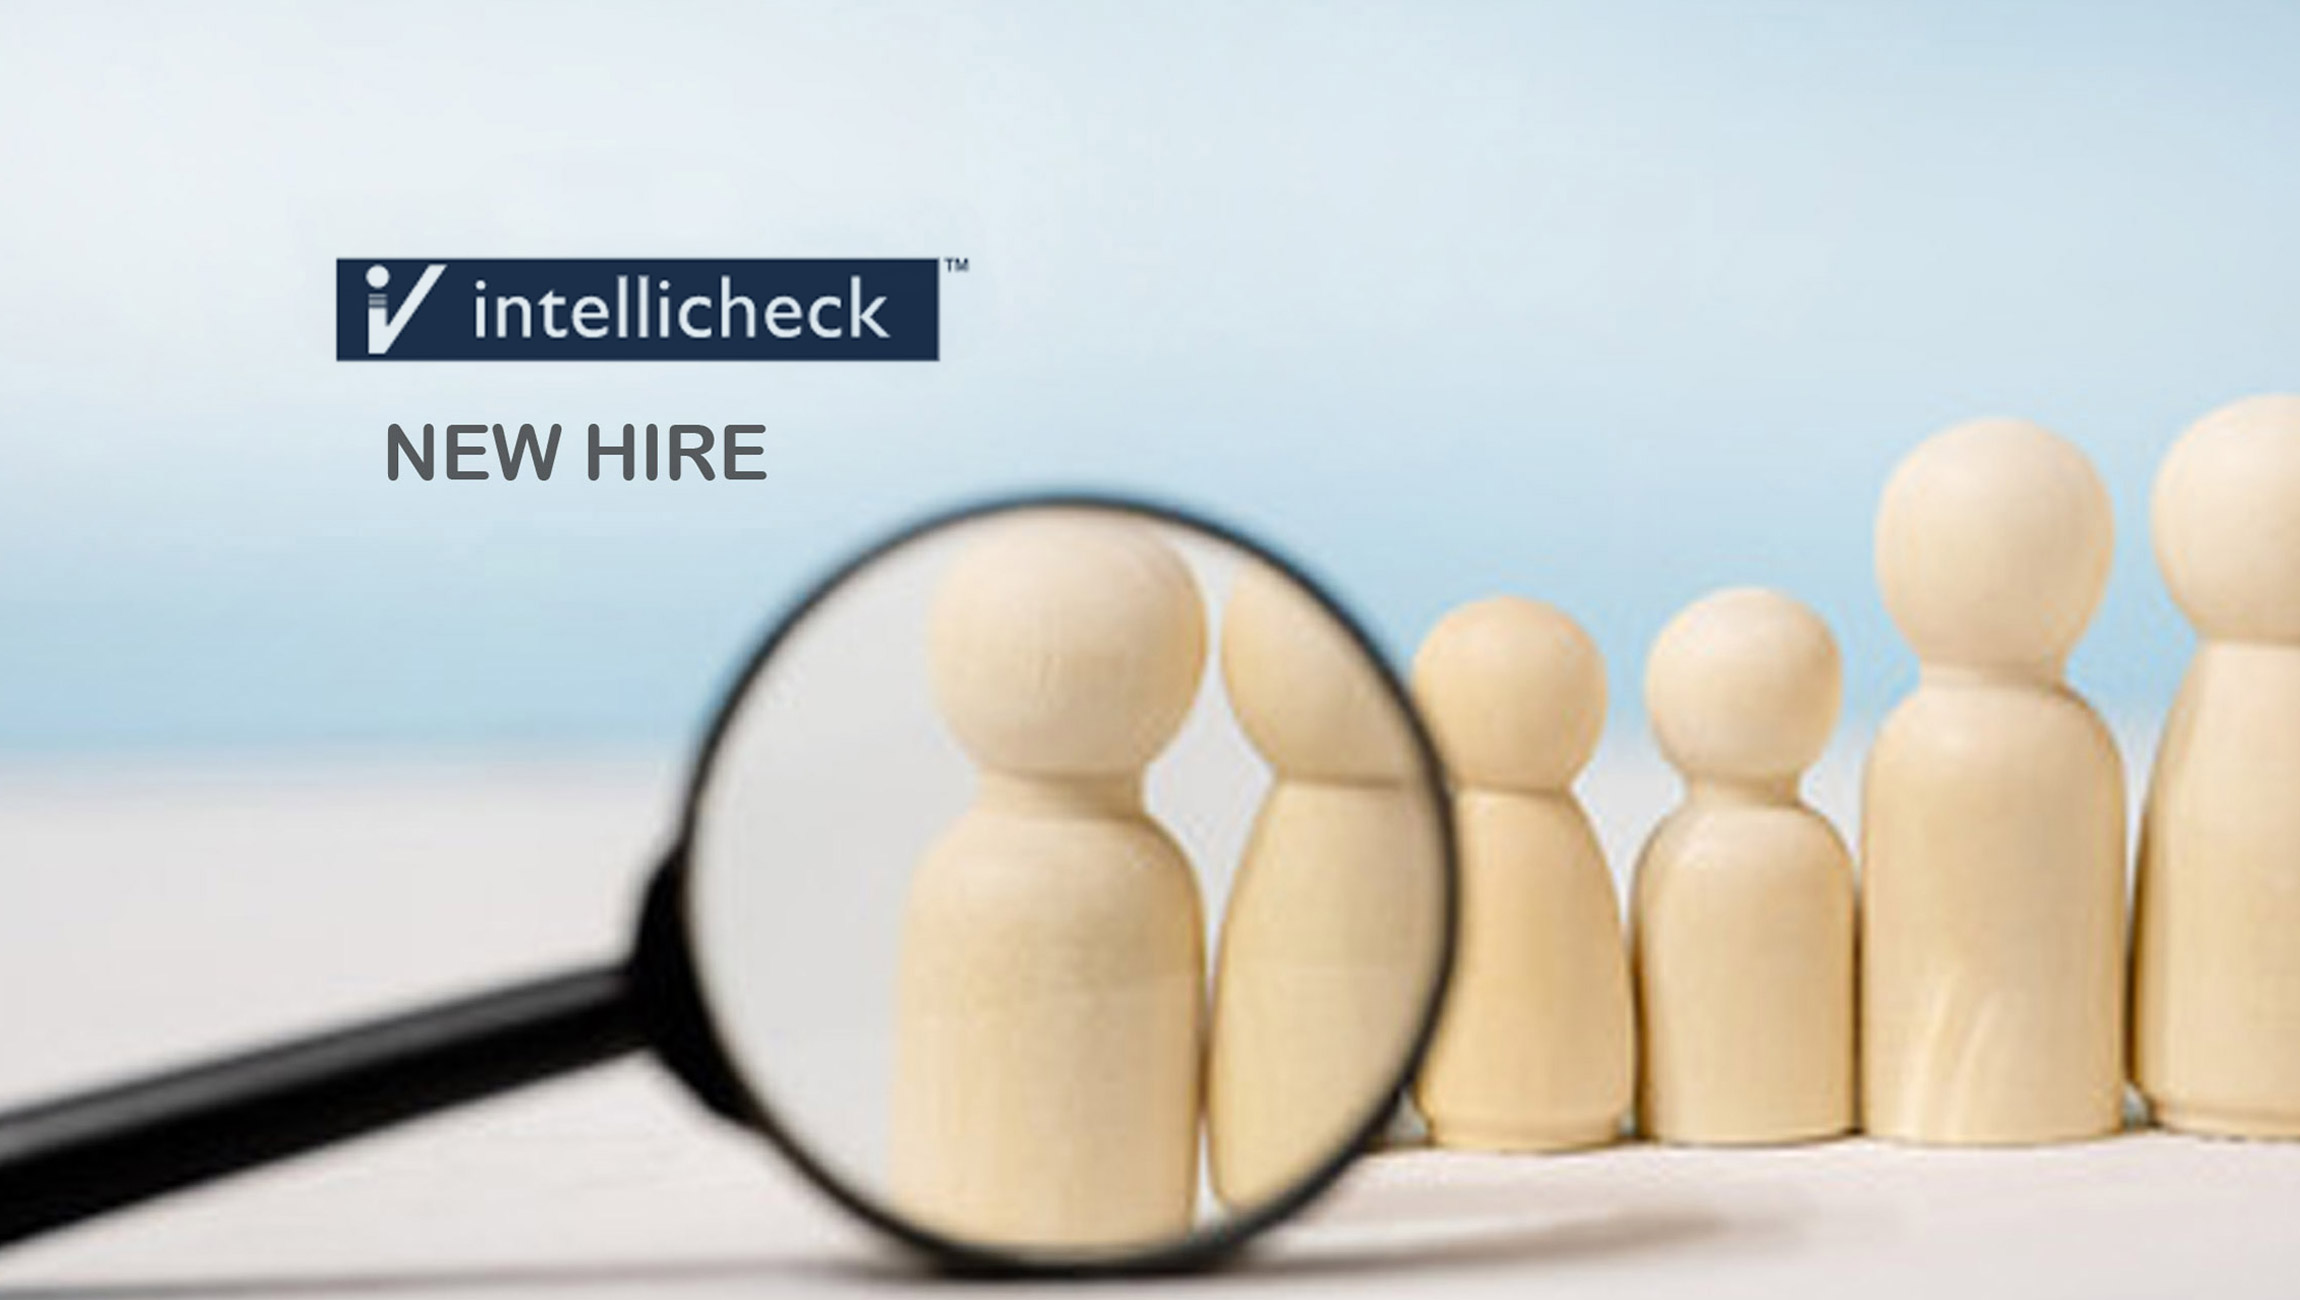 Intellicheck Announces Appointments of Senior Vice President Sales and Vice President Marketing